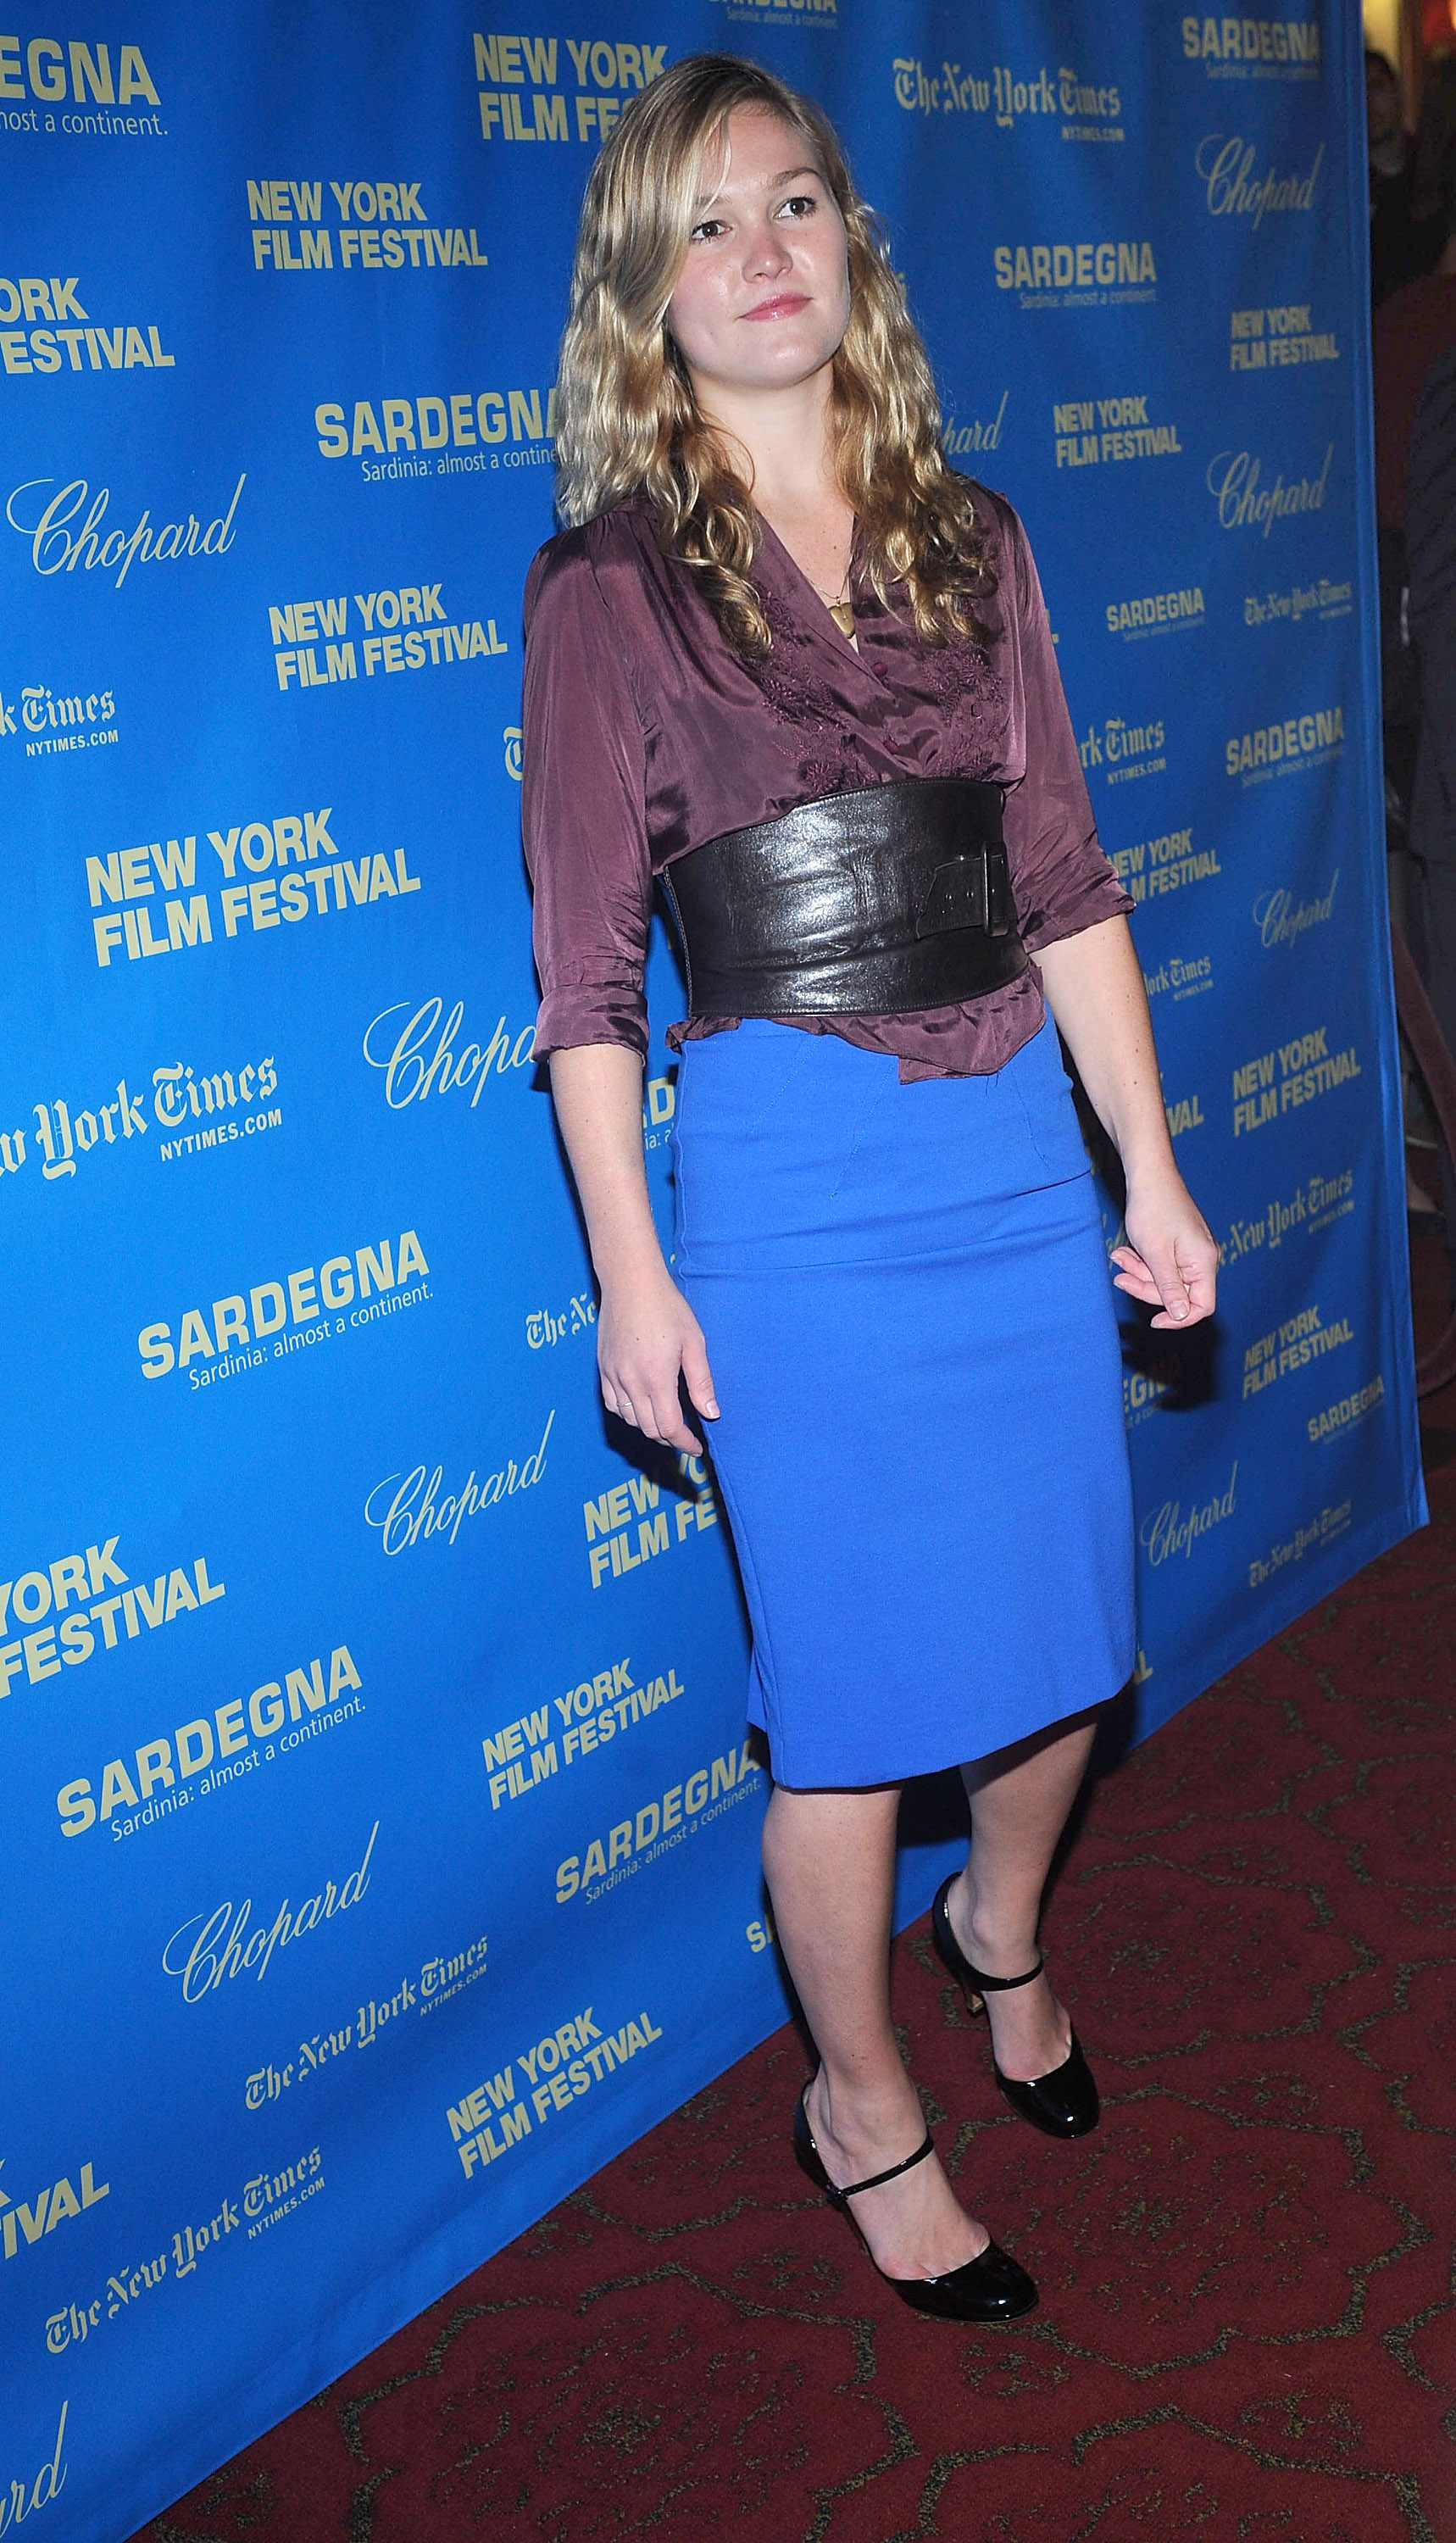 86418_Julia_Stiles_2008-09-27_-_Happy-Go-Lucky_premiere_of_during_the_46th_New_York_Film_Festival_673_122_707lo.jpg